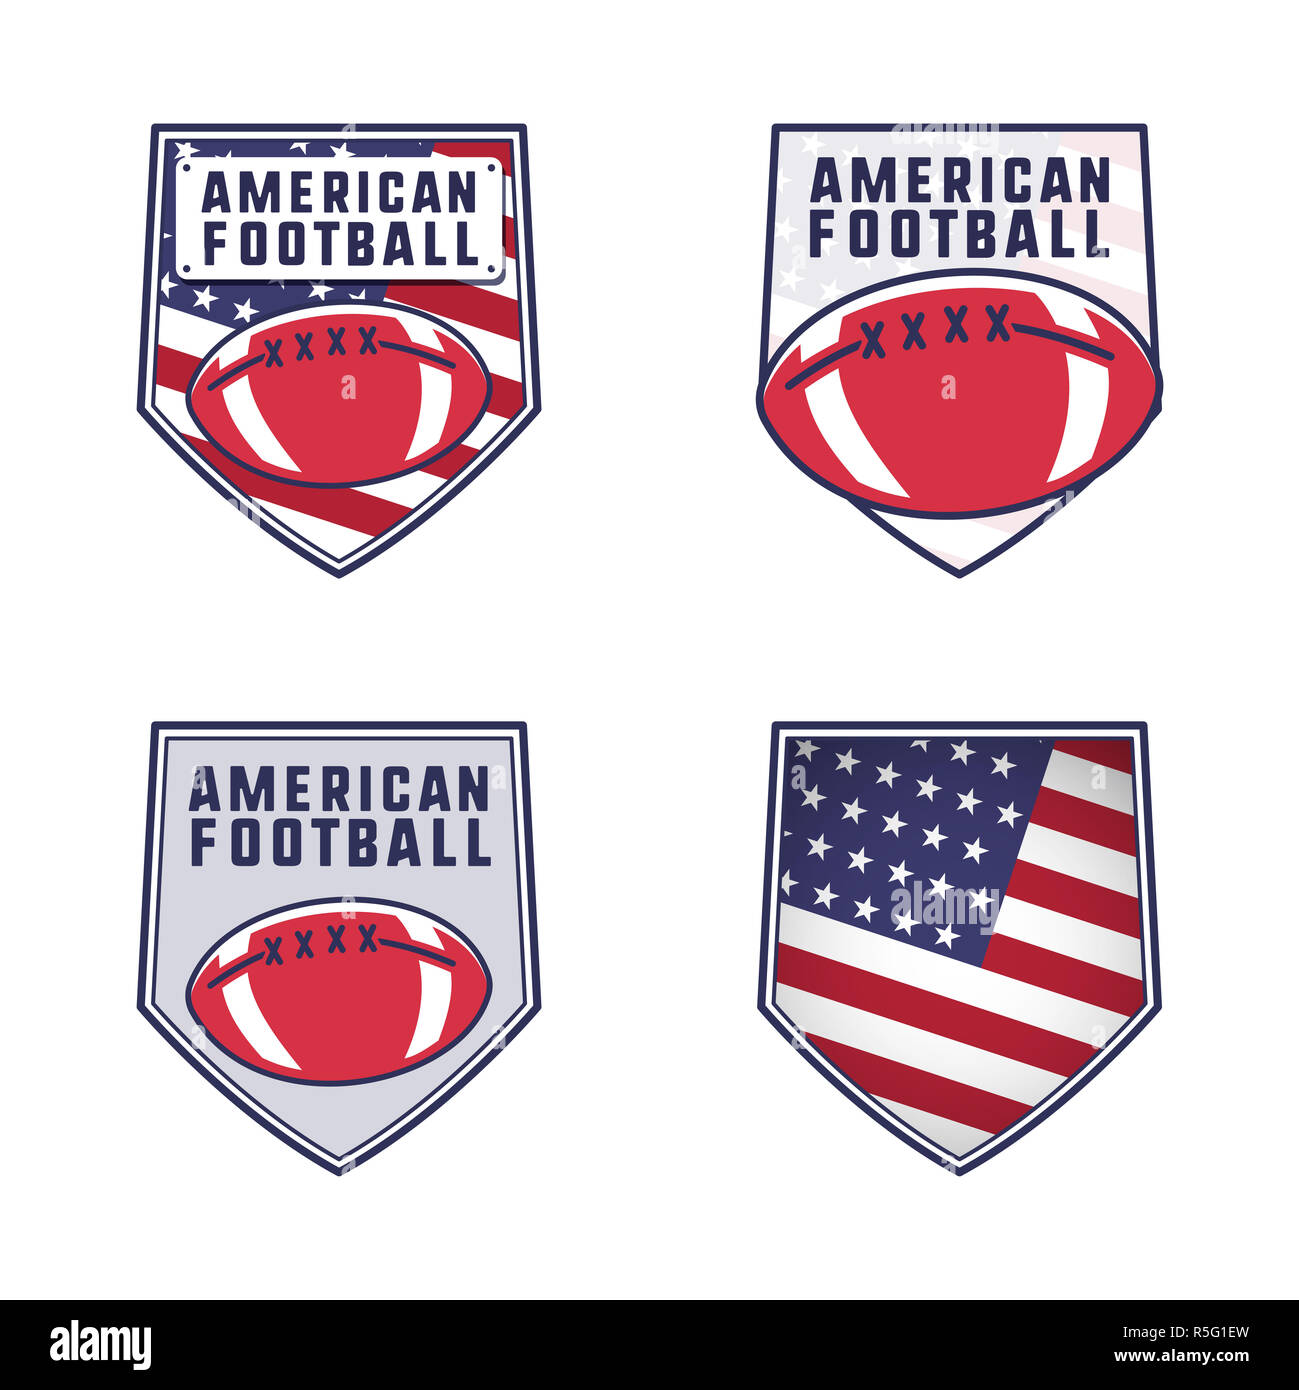 American football logo emblems set. USA sports badges collection in flat colorful style. Cute logotypes design with ball and america flag. Stock insignias isolated on white background - Stock Image